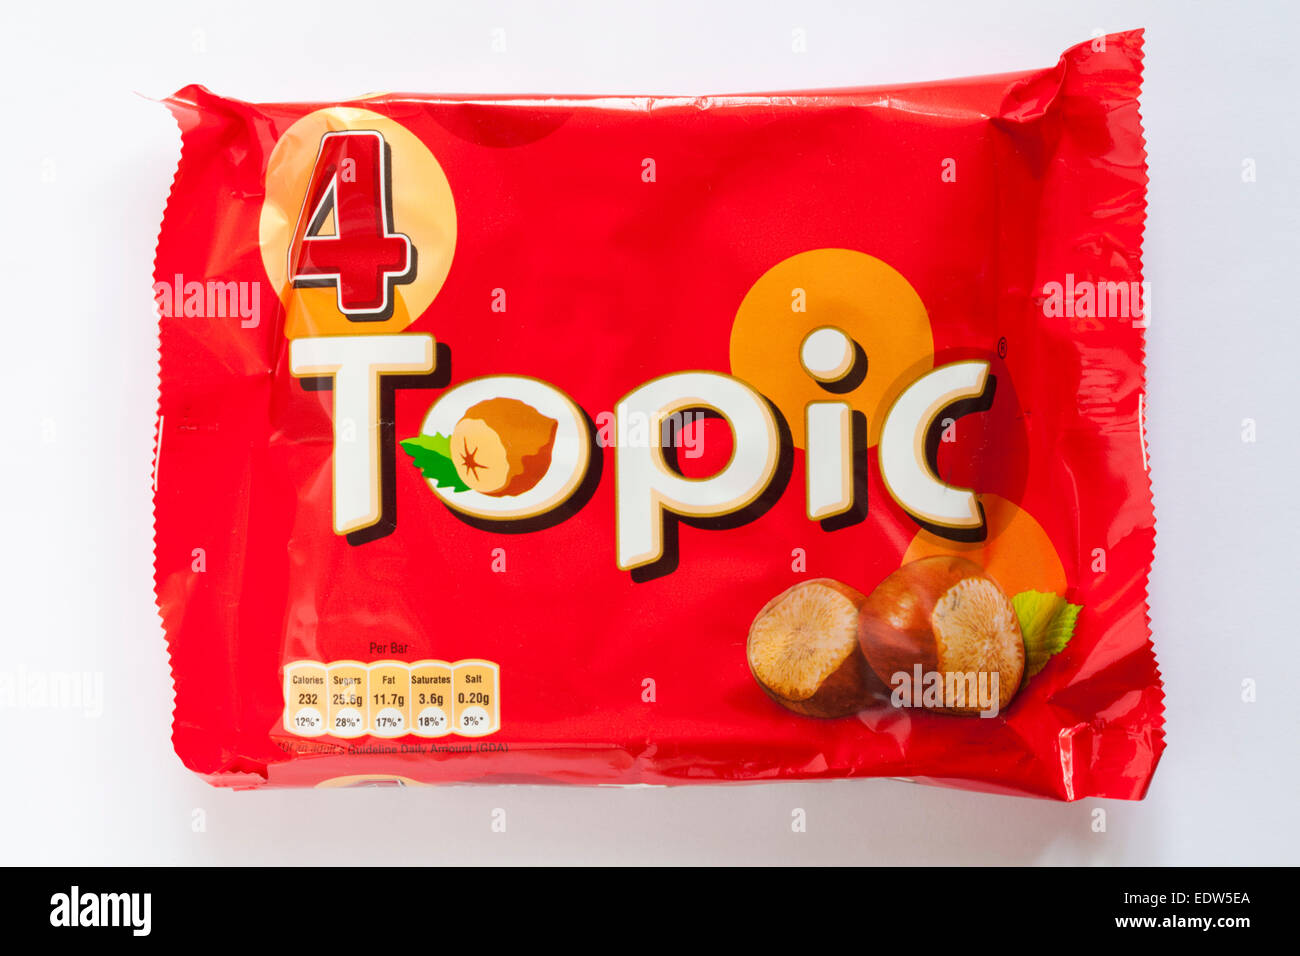 packet of 4 Topic bars isolated on white background - milk chocolate with hazelnuts, soft nougat and smooth caramel - Stock Image